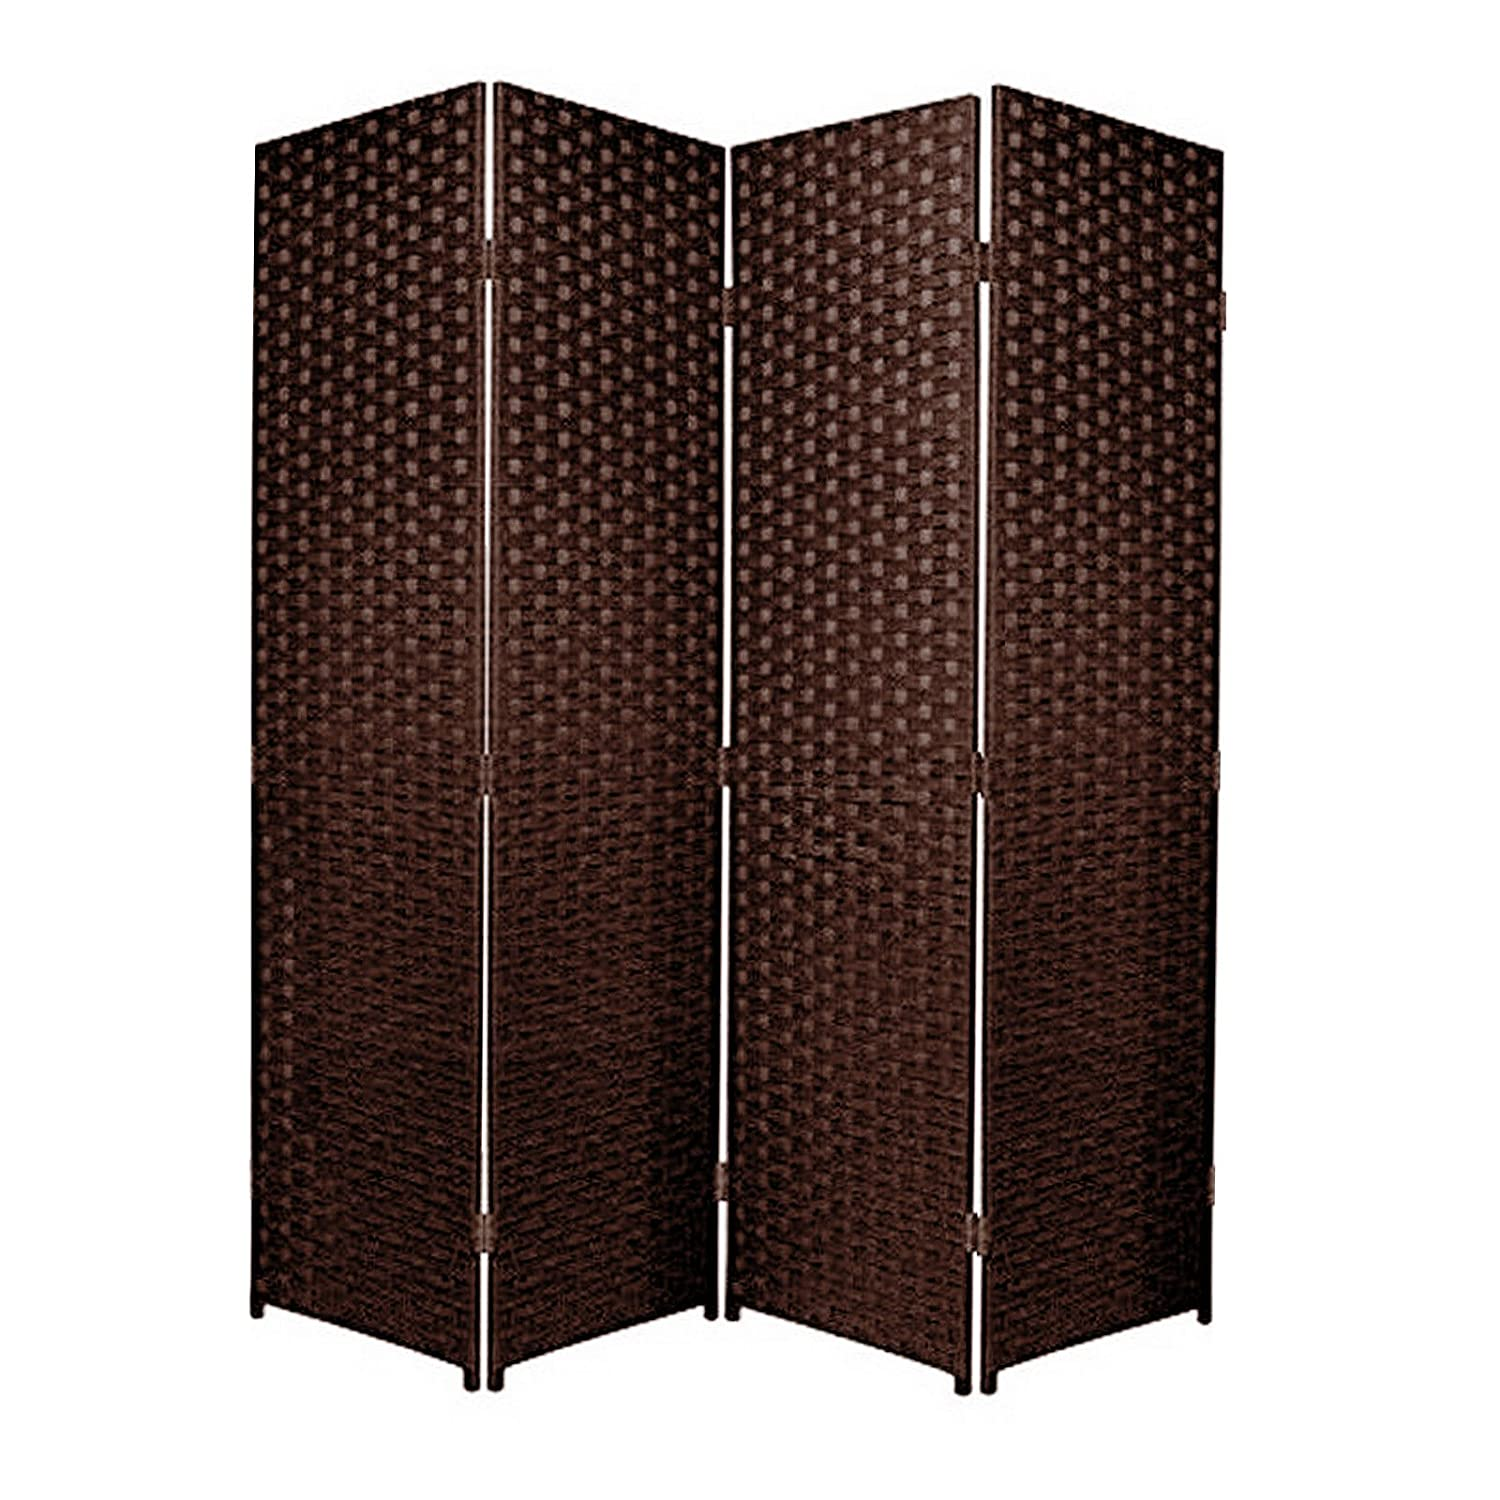 Astounding Details About Saleemexpress Room Divider Screen Folding Paravent 6 Panel Partition Wall Panel Download Free Architecture Designs Crovemadebymaigaardcom